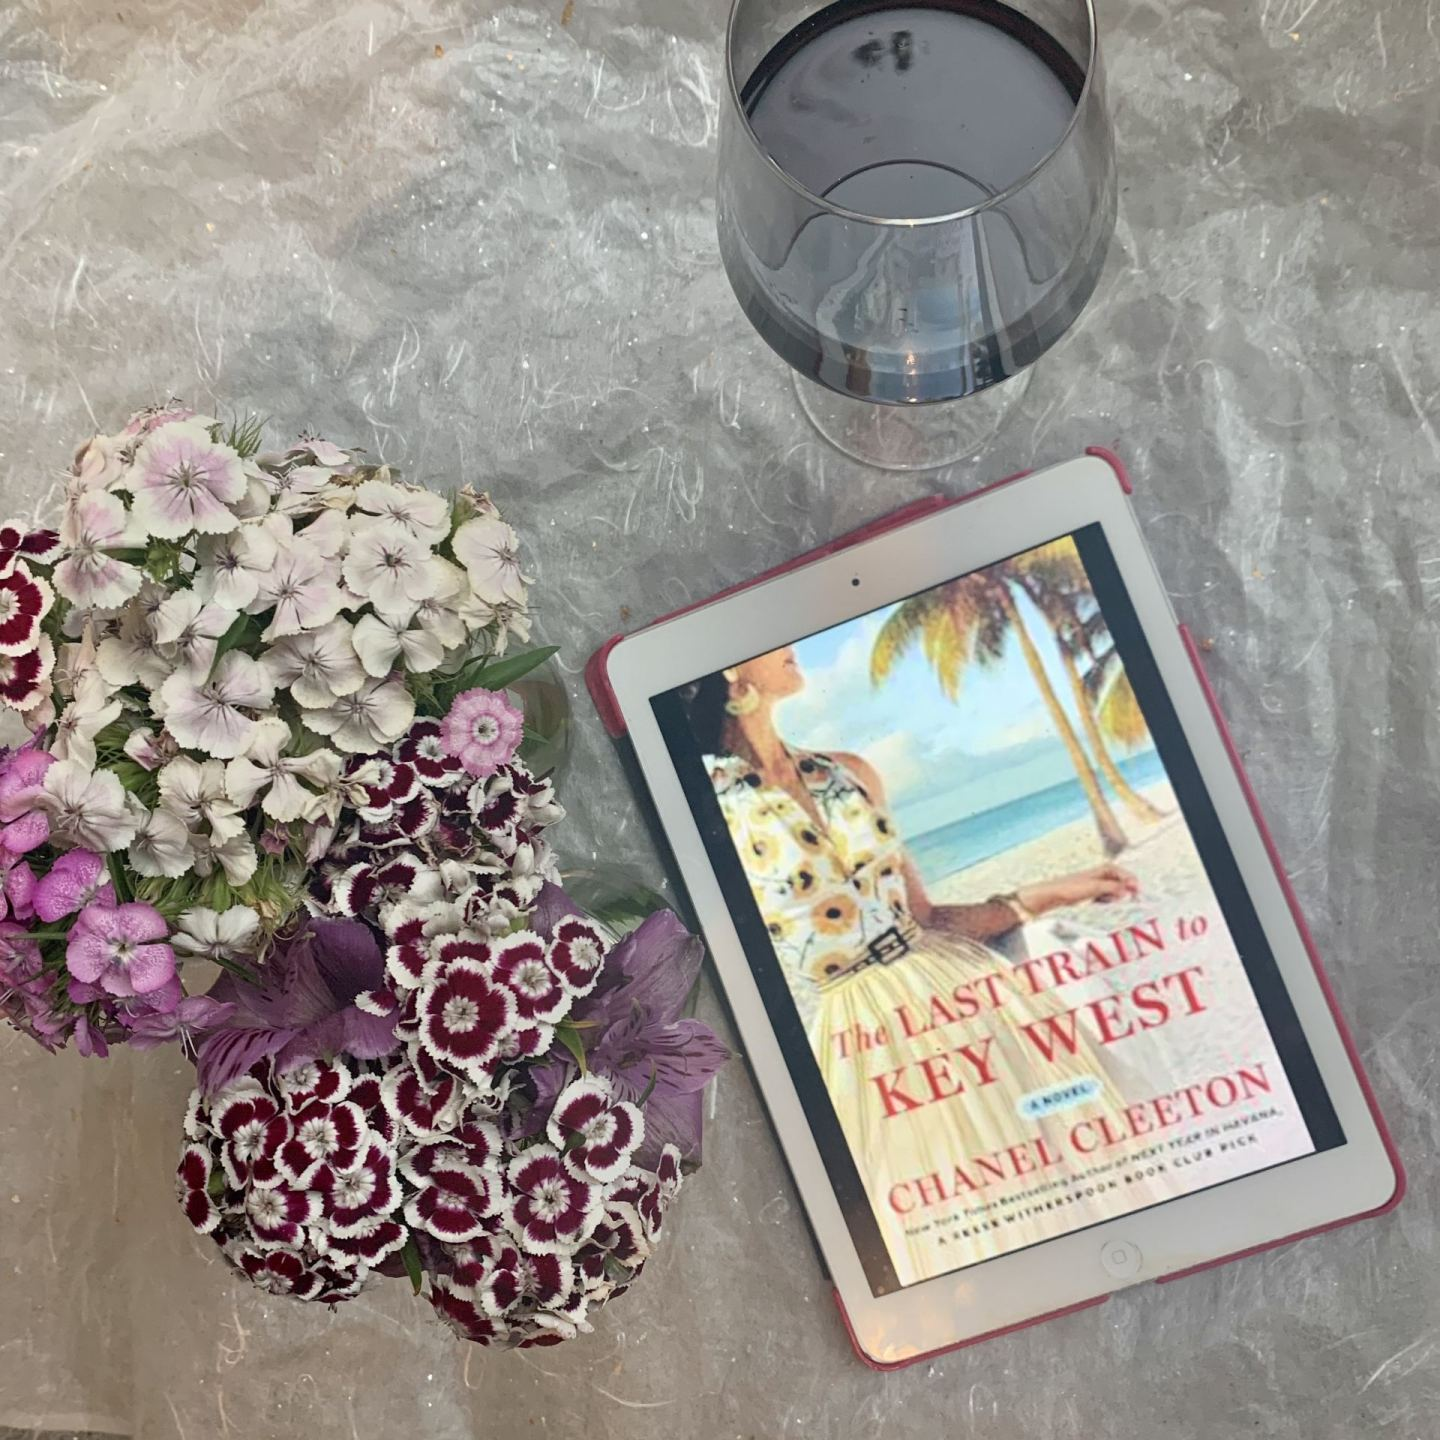 The Last Train To Key West; a powerful portrayal of a weekend in history